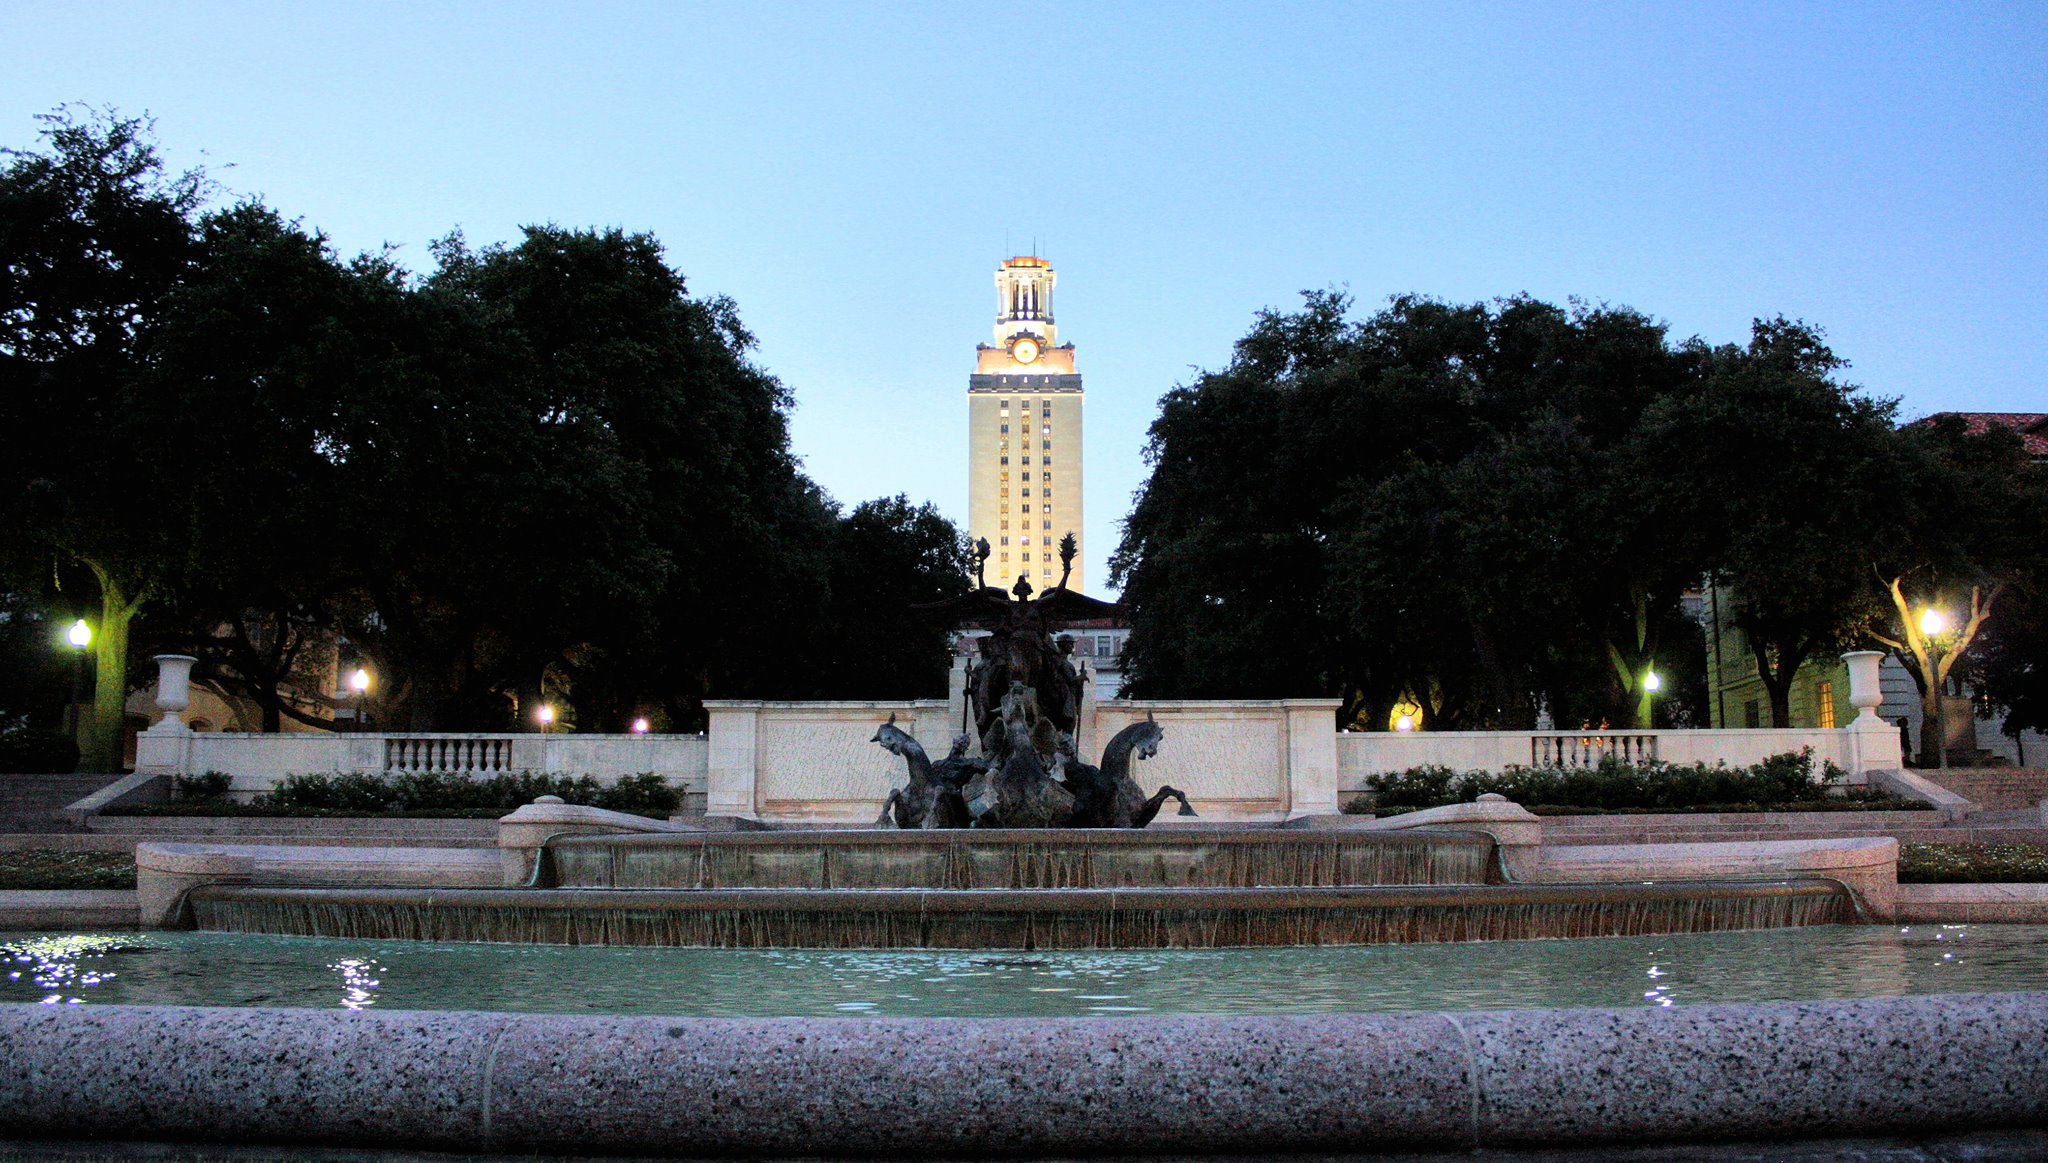 University of Texas Motto:  Disciplina praesidium civitatis  - A cultivated mind is the guardian genius of democracy.